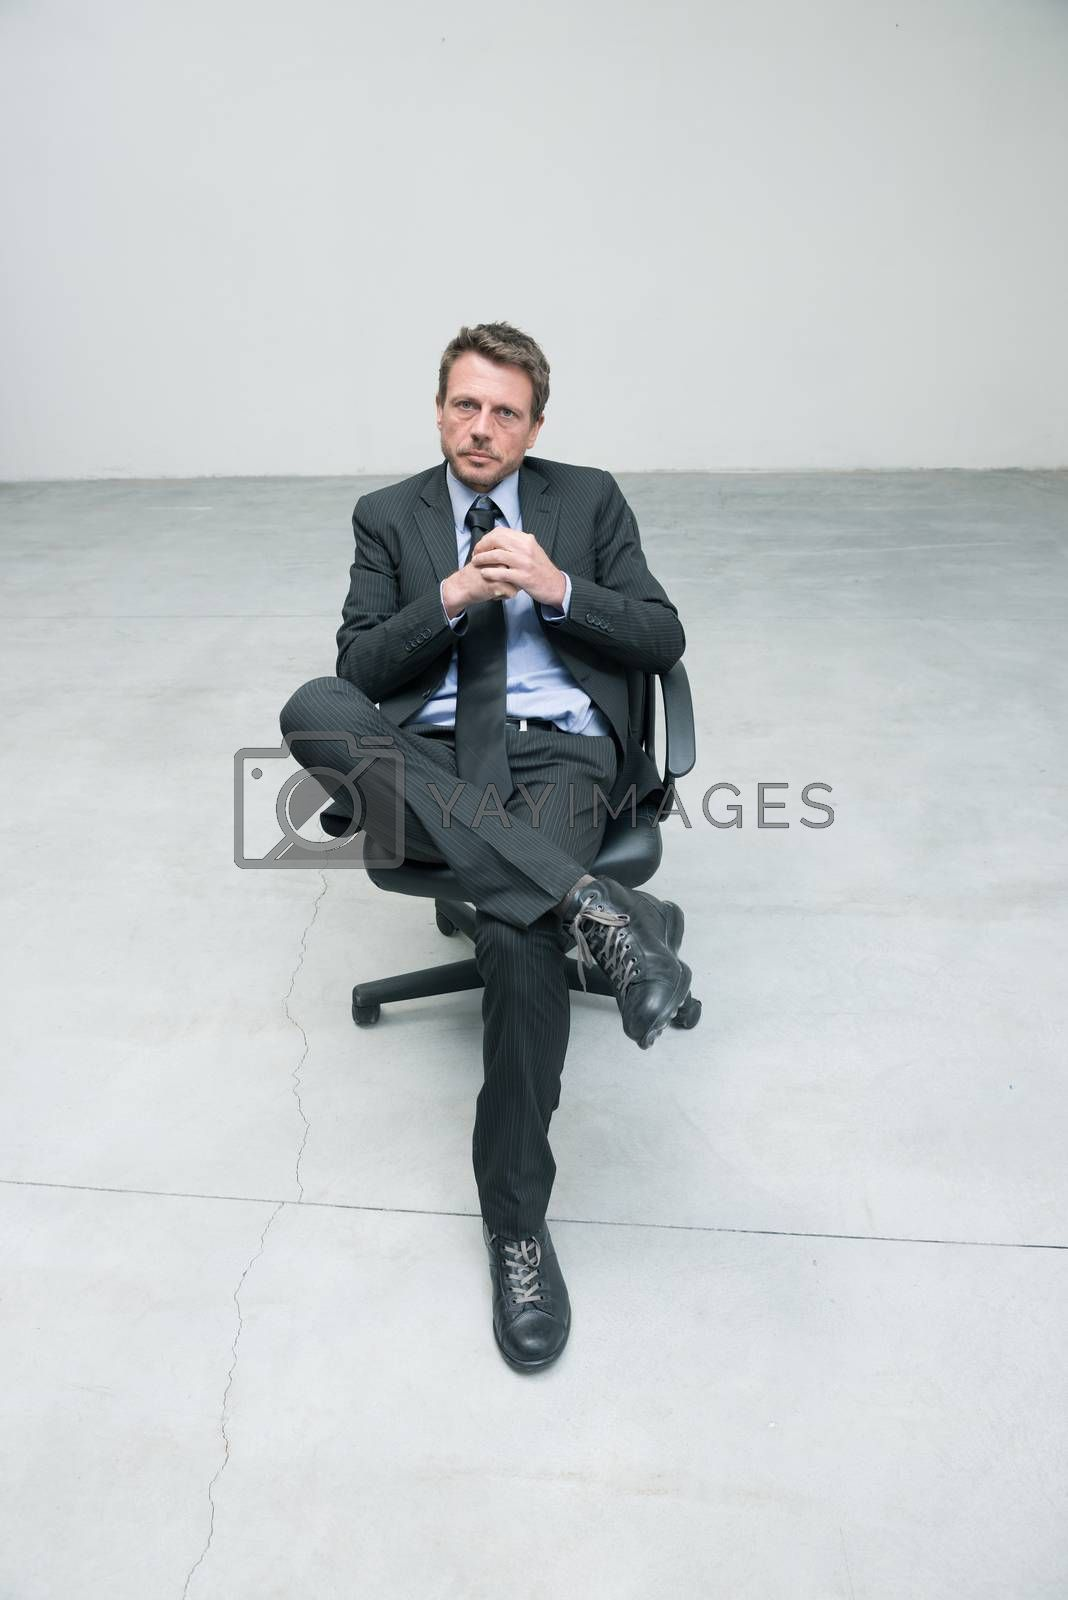 Businessman sitting on an office chair against concrete floor background.